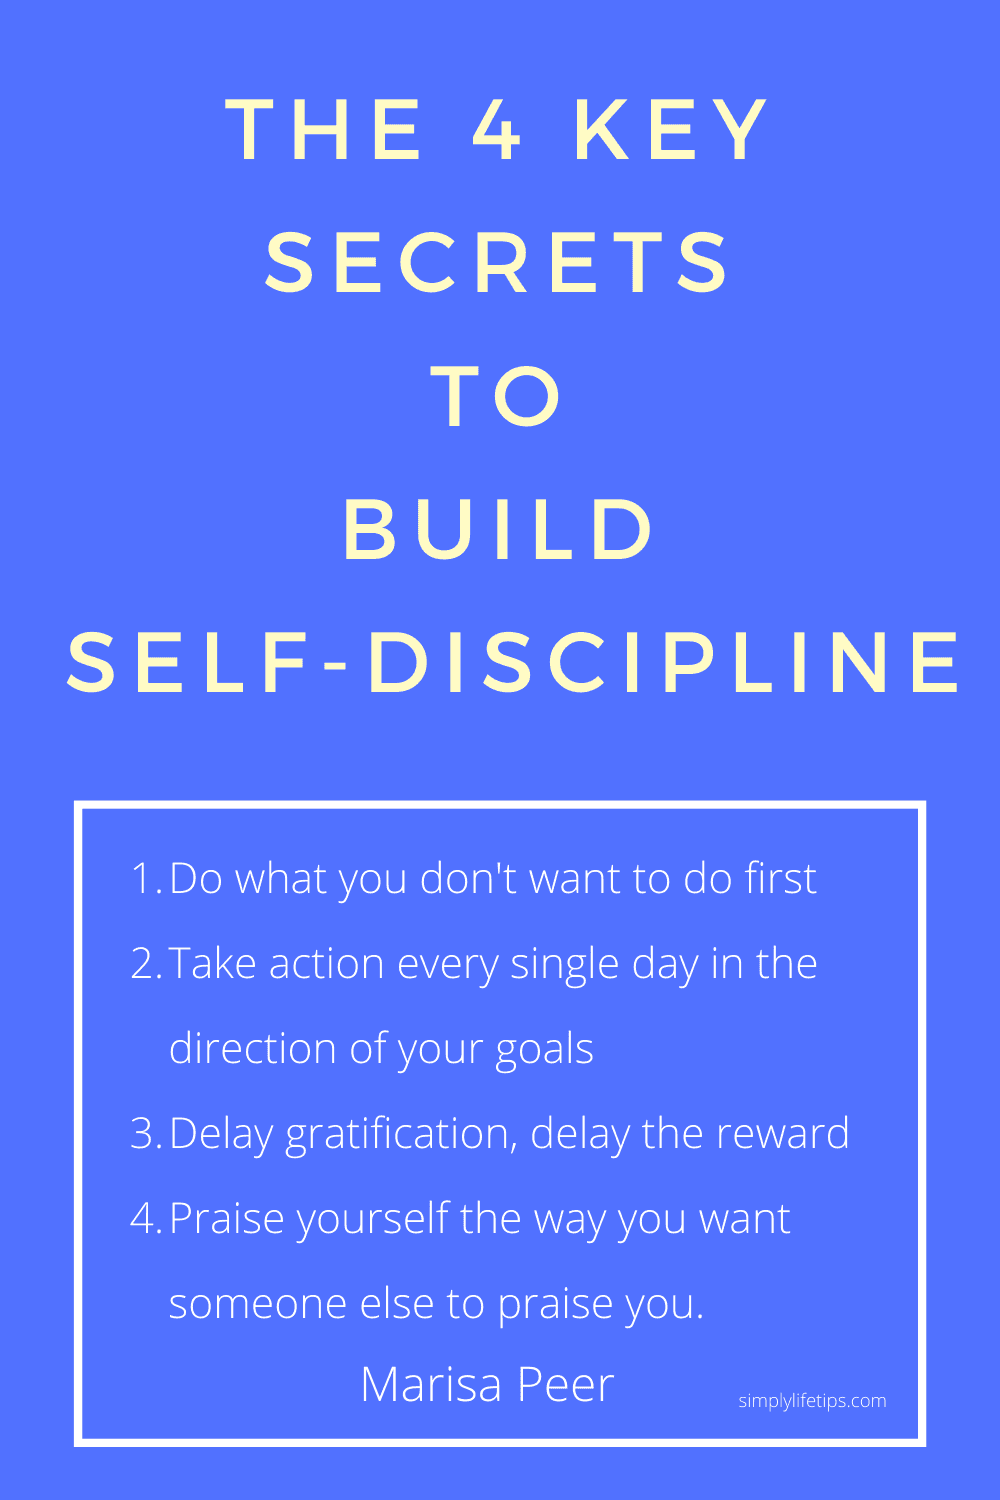 The 4 key secrets to build self-discipline - Marisa Peer